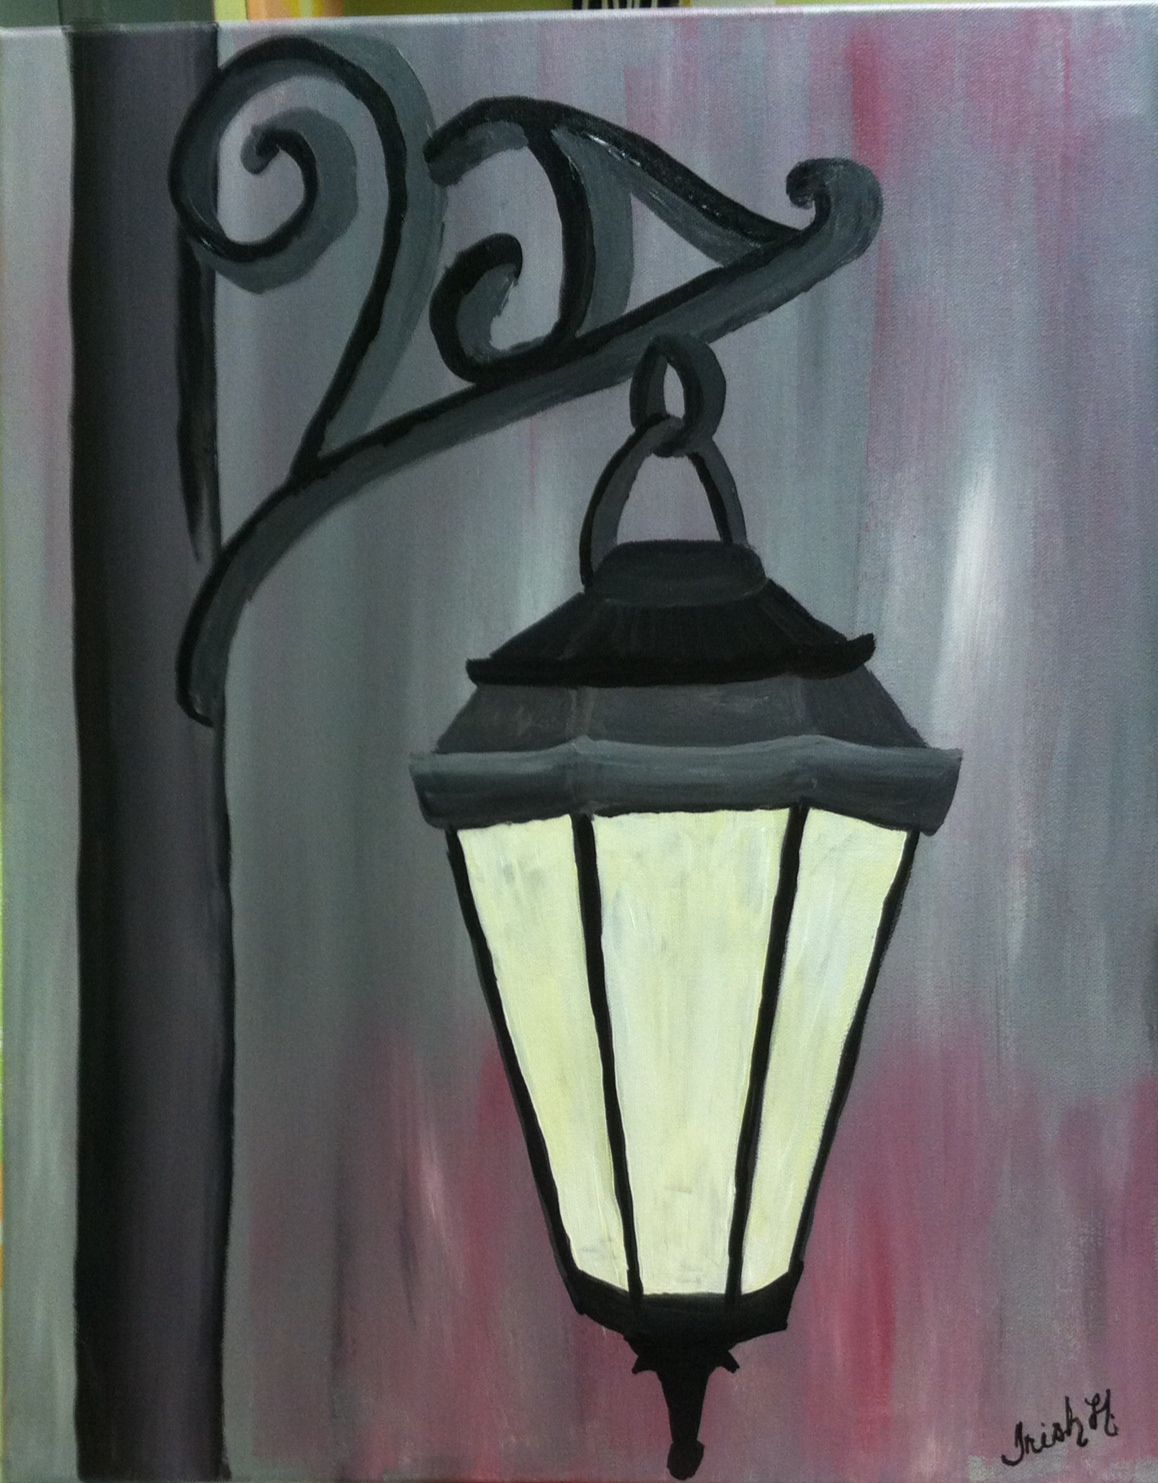 Acrylic painting lamp post 16x20 | painting | Pinterest | Painting ... for Lamp Post Painting  29jwn